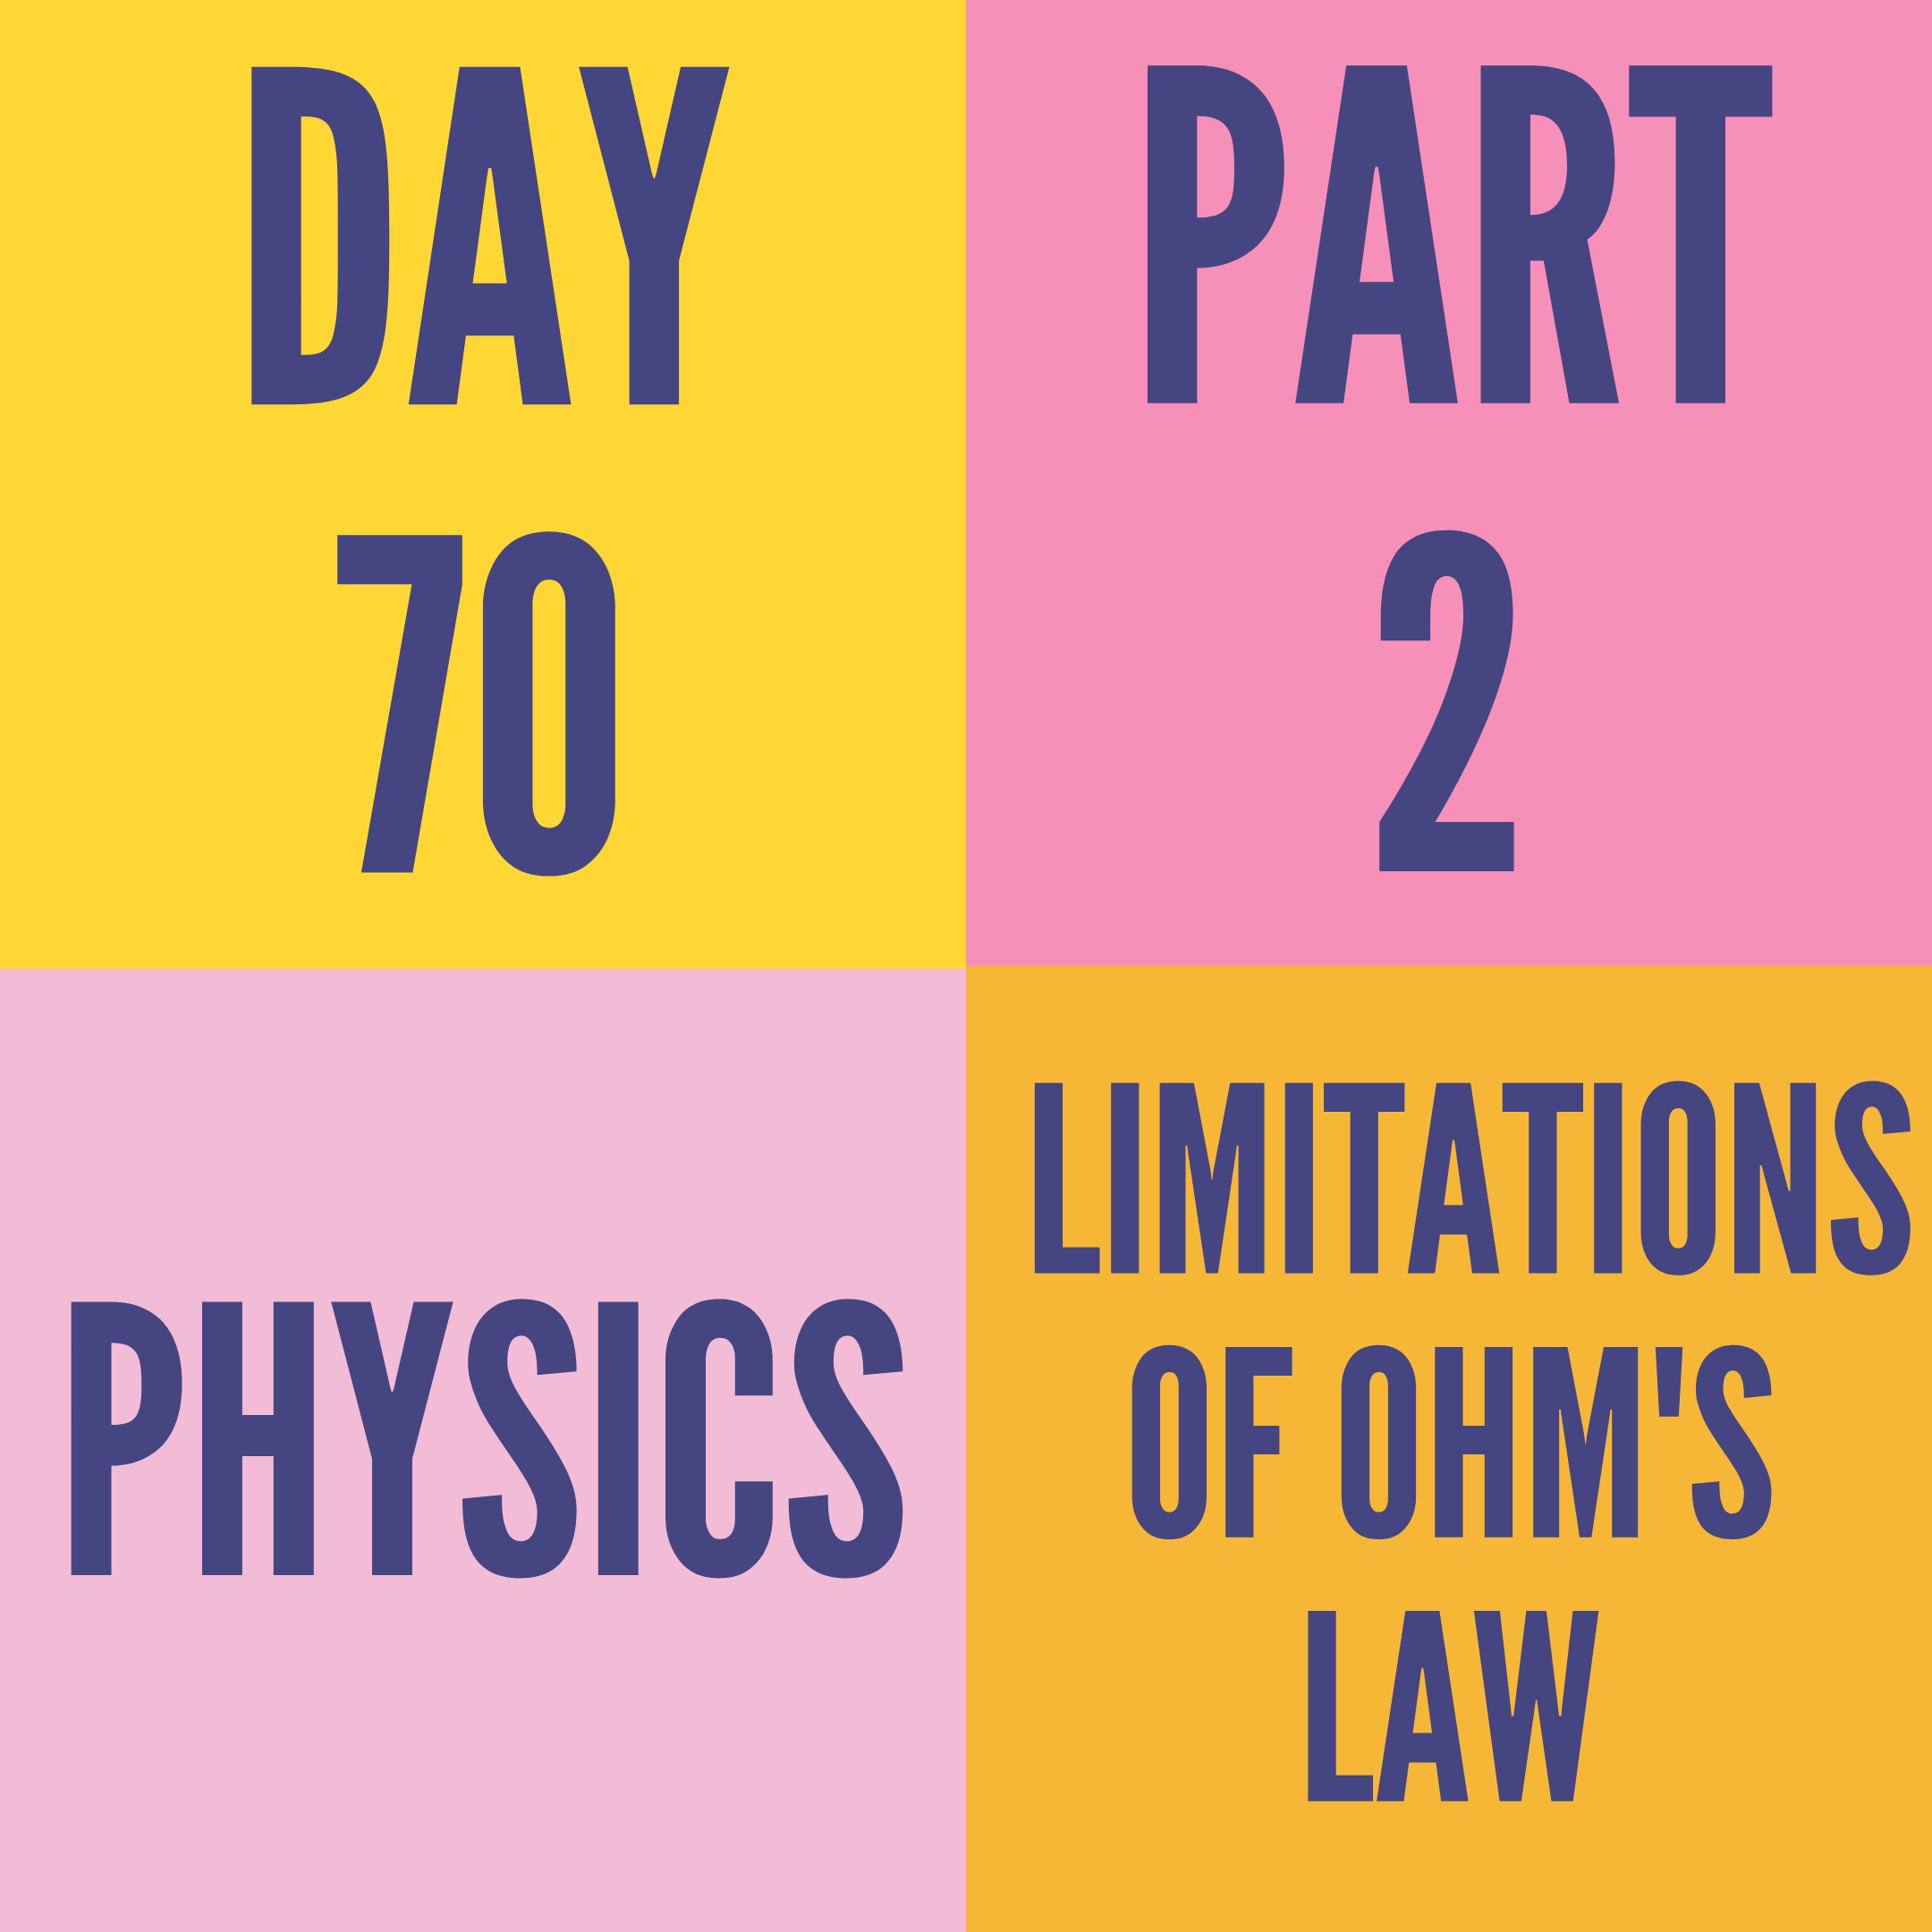 DAY-70 PART-2  LIMITATIONS OF OHM'S LAW